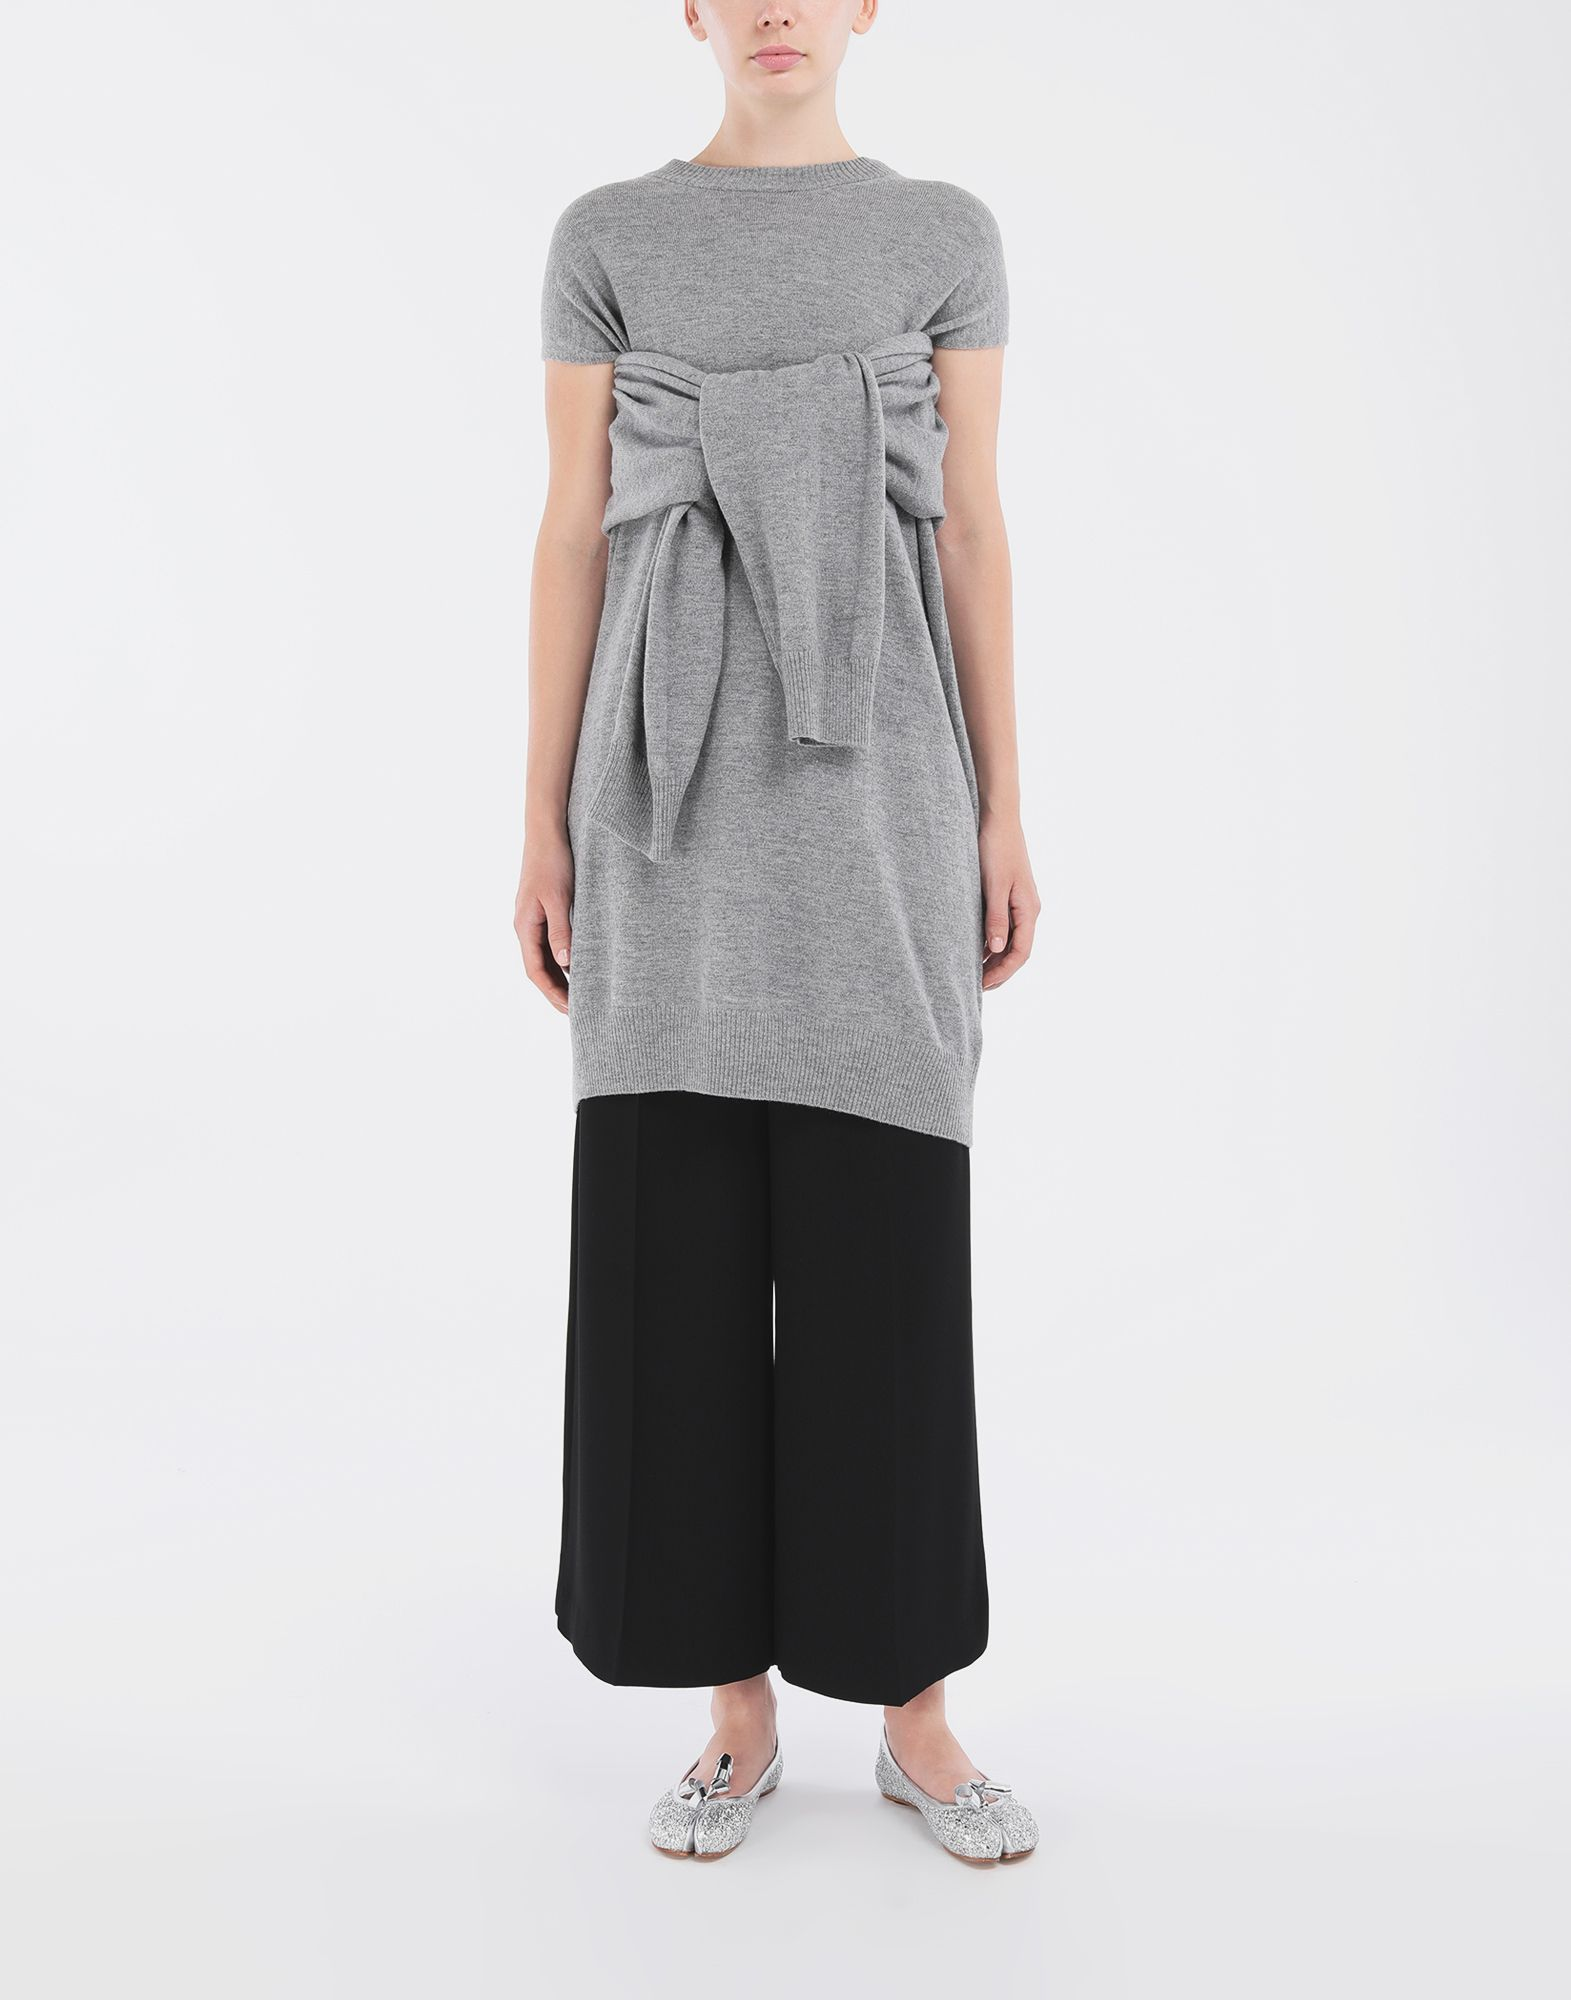 MAISON MARGIELA Sweater cut-out dress Dress Woman d